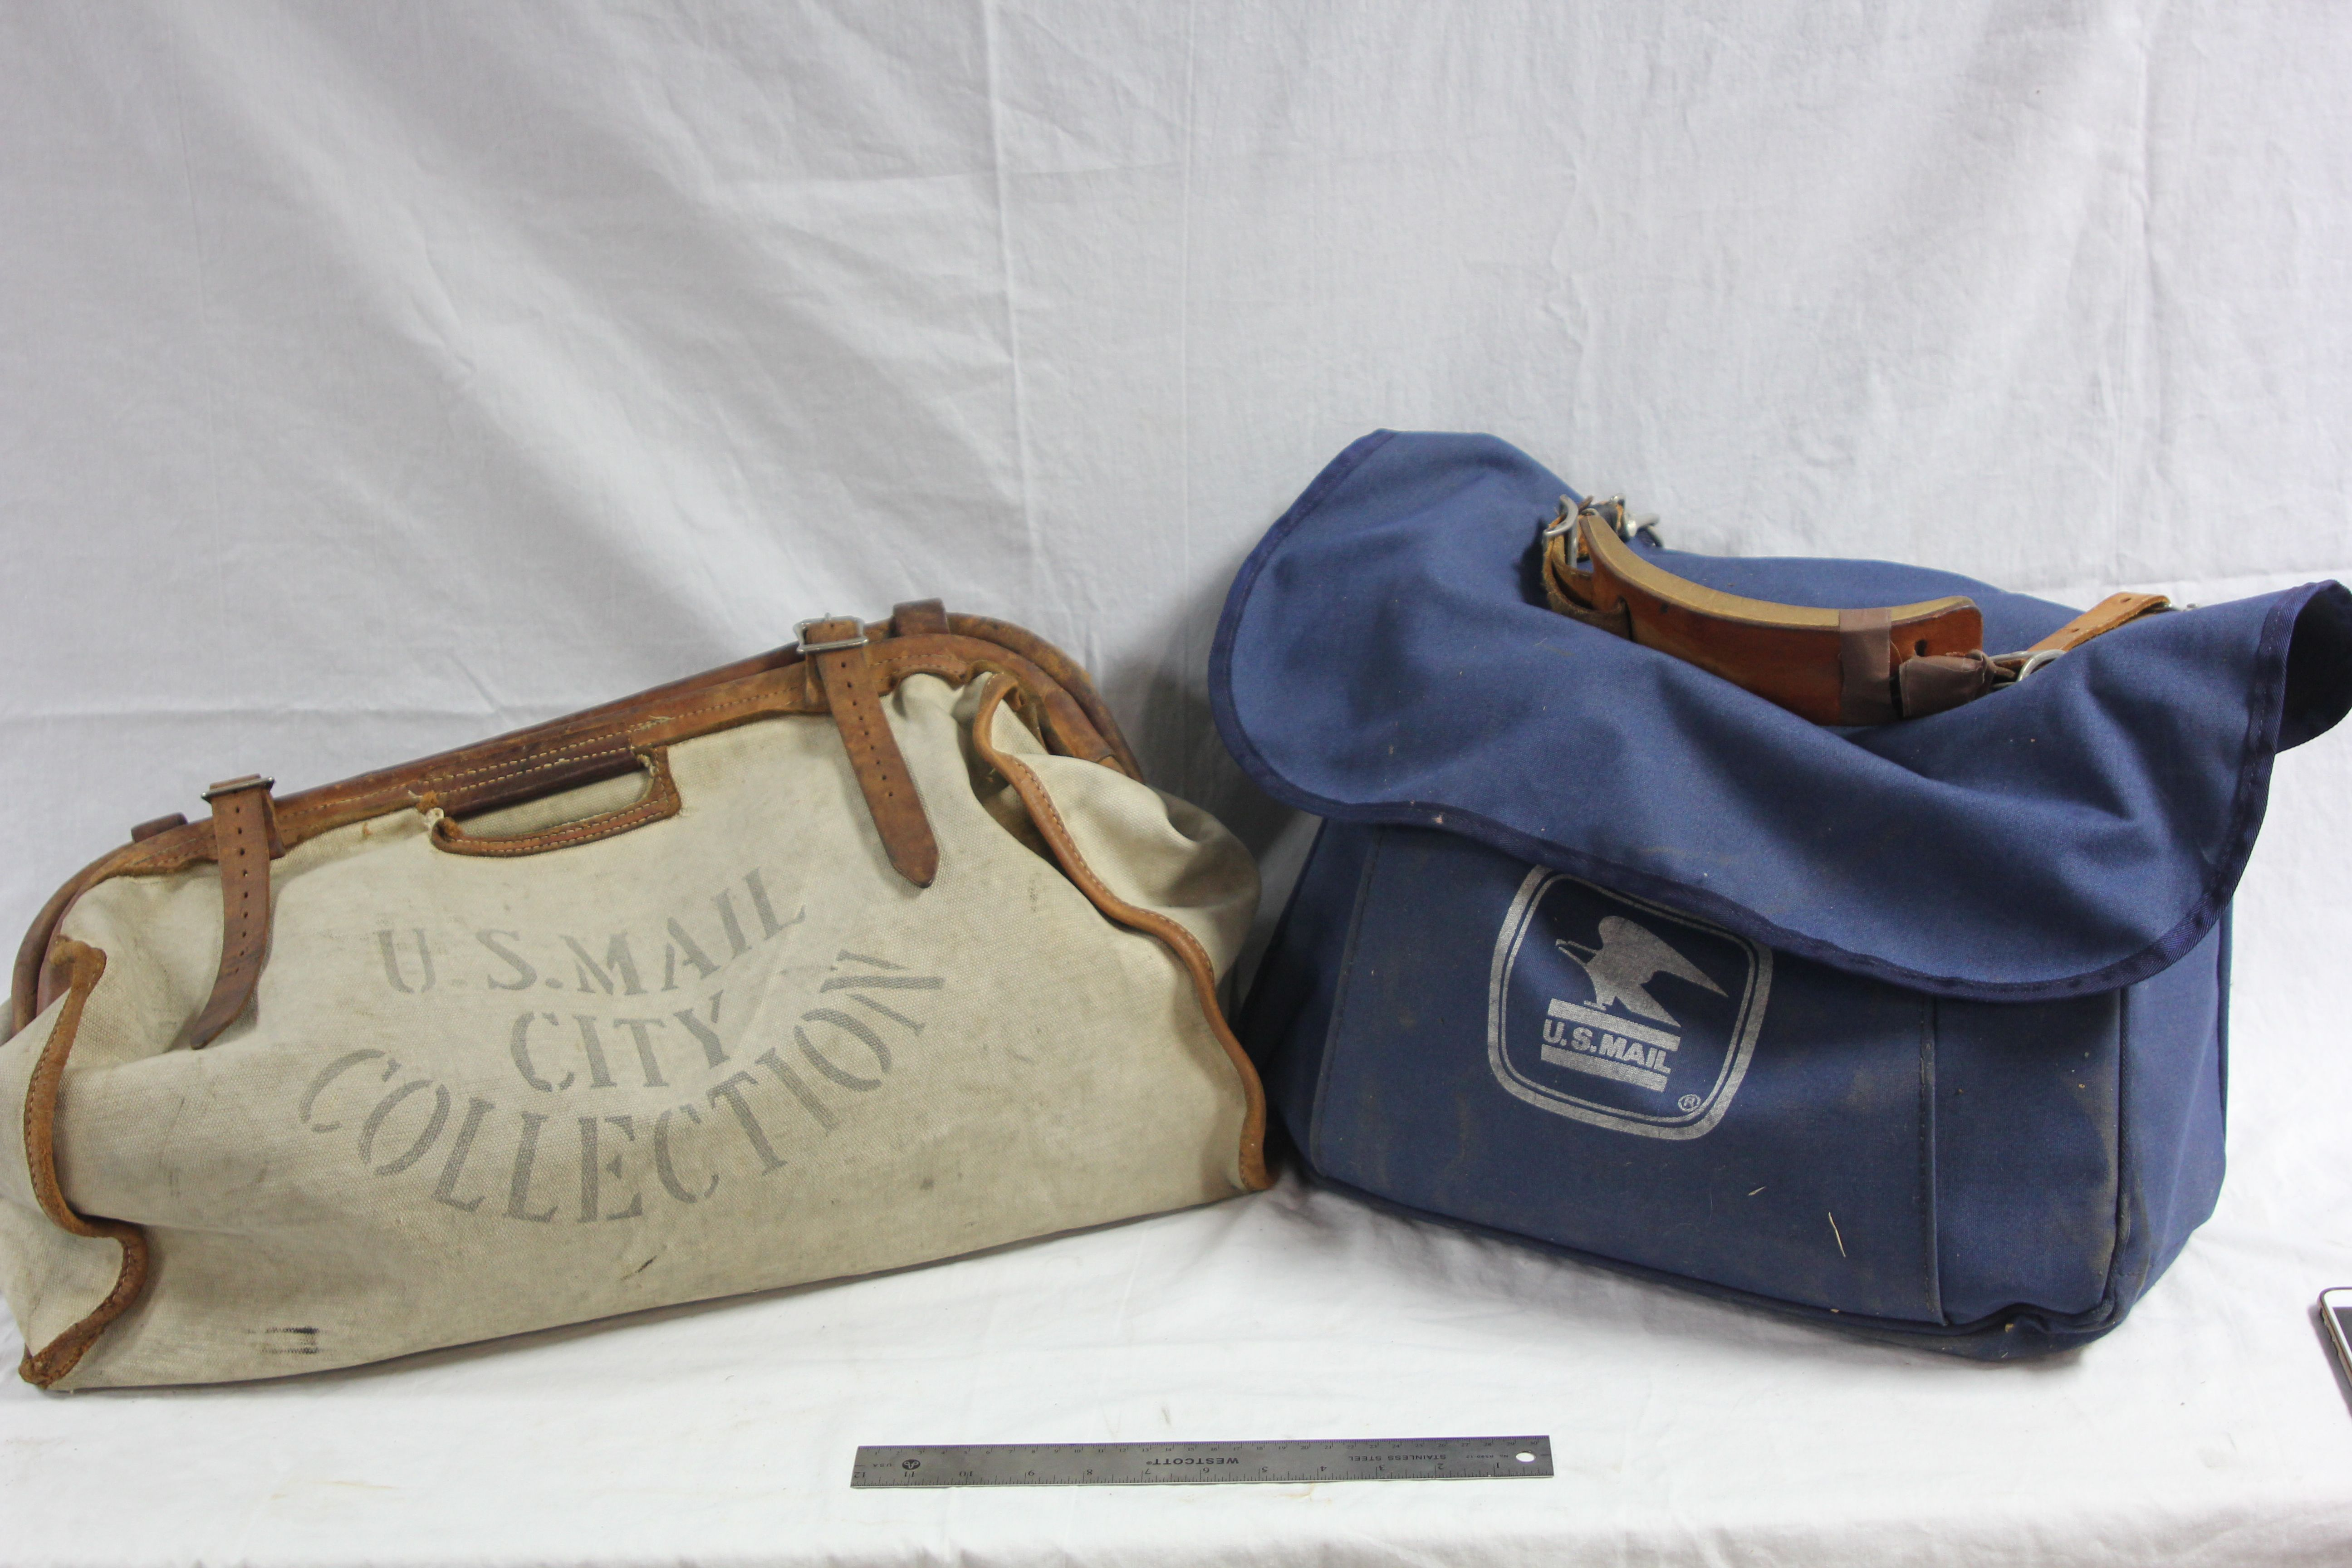 US Mail Man Bags